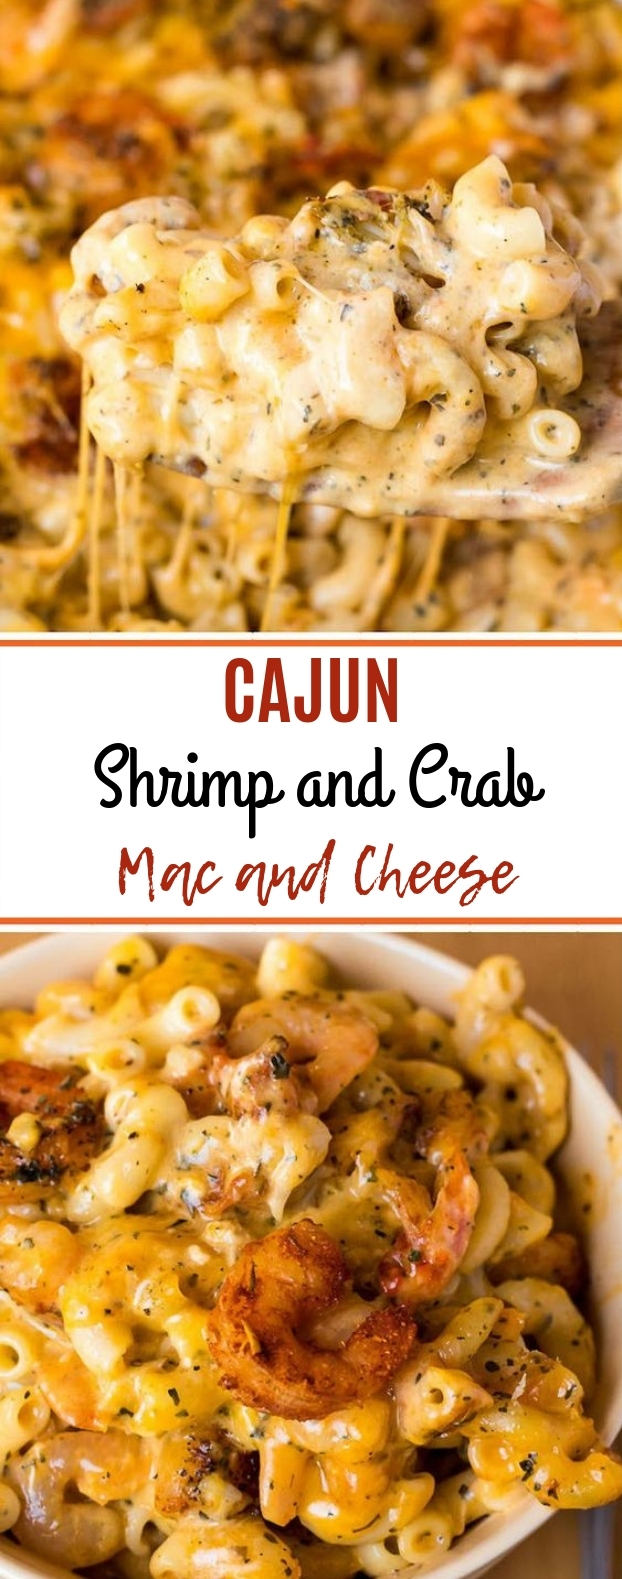 Cajun Shrimp and Crab Mac and Cheese #macandcheese #dinner